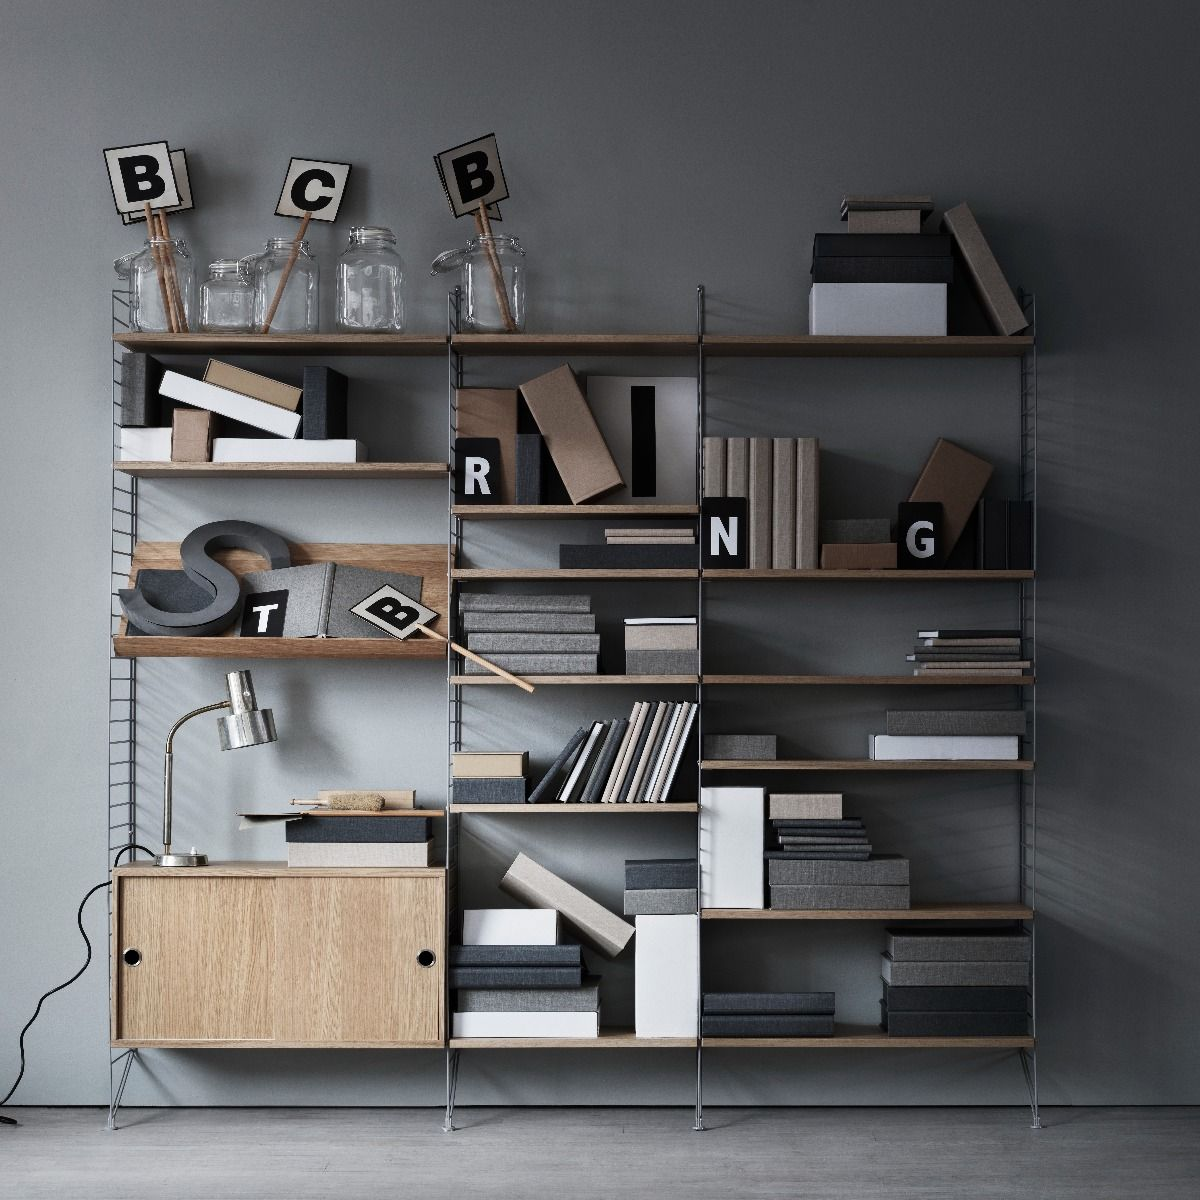 Oak and grey shelving system on a grey wall and boxes on the shelves